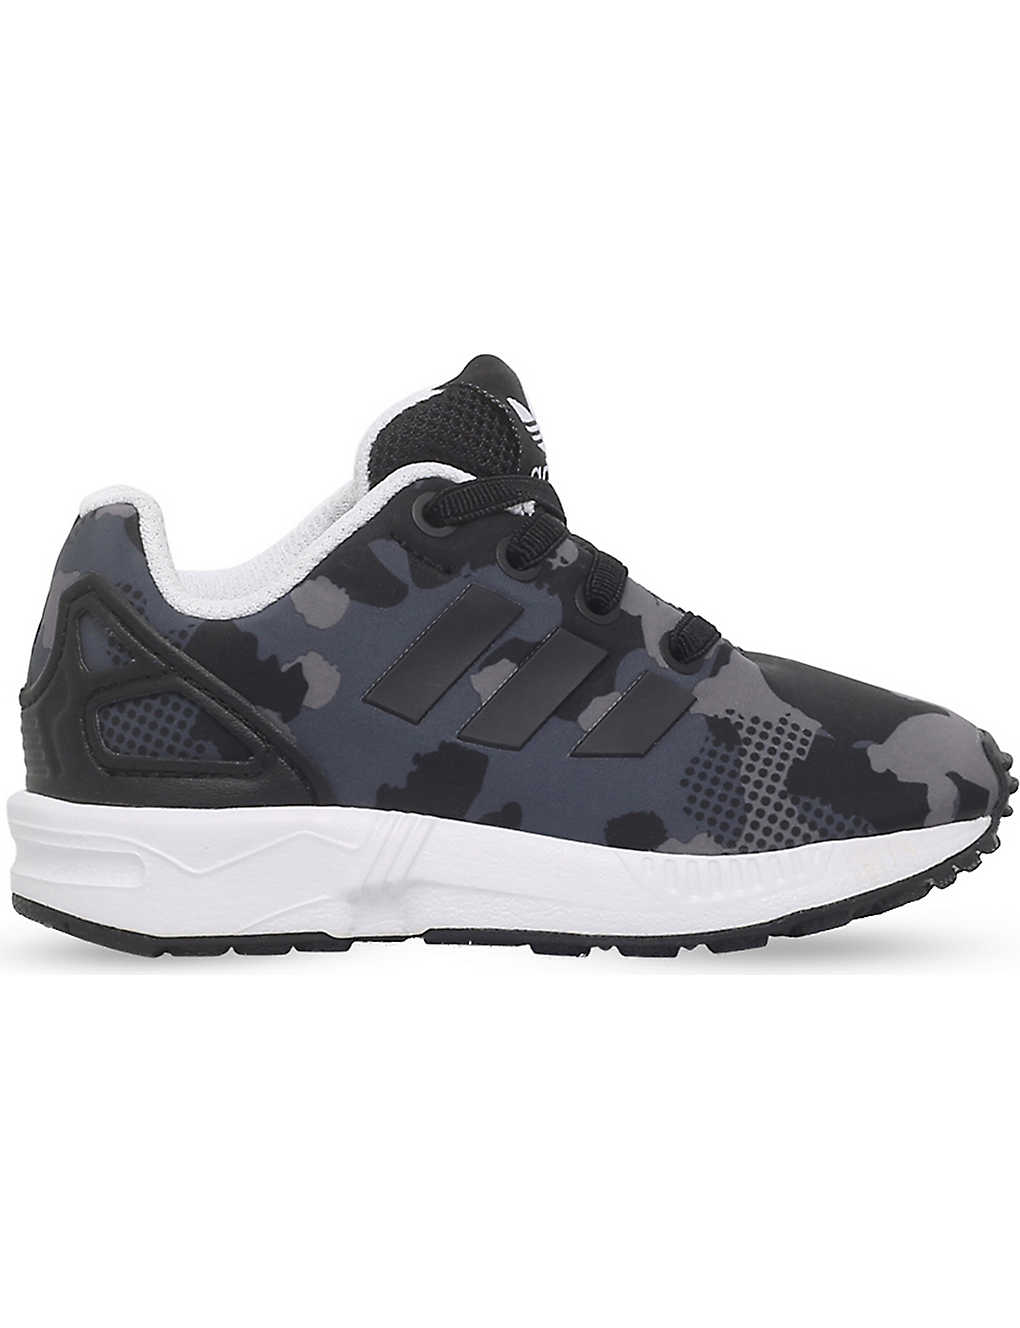 los angeles 3d47e 01be8 ADIDAS - Zx flux camo-print neoprene trainers 6 months - 5 ...